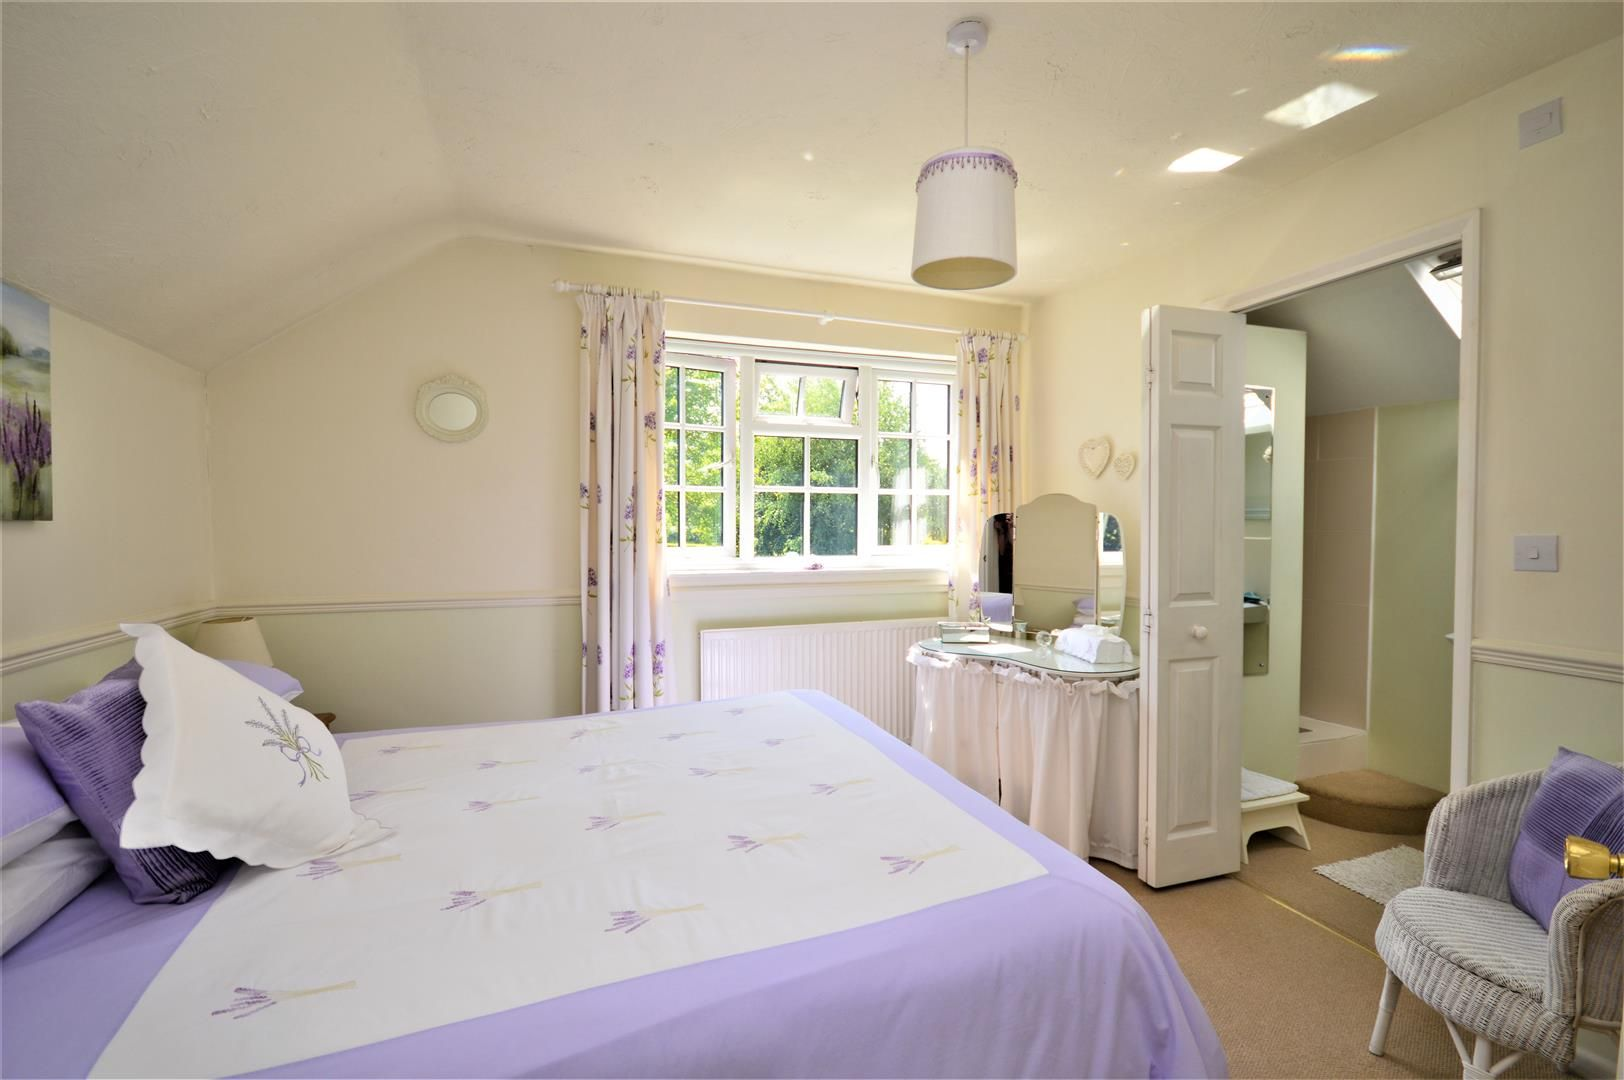 3 bed semi-detached for sale in Madley 10